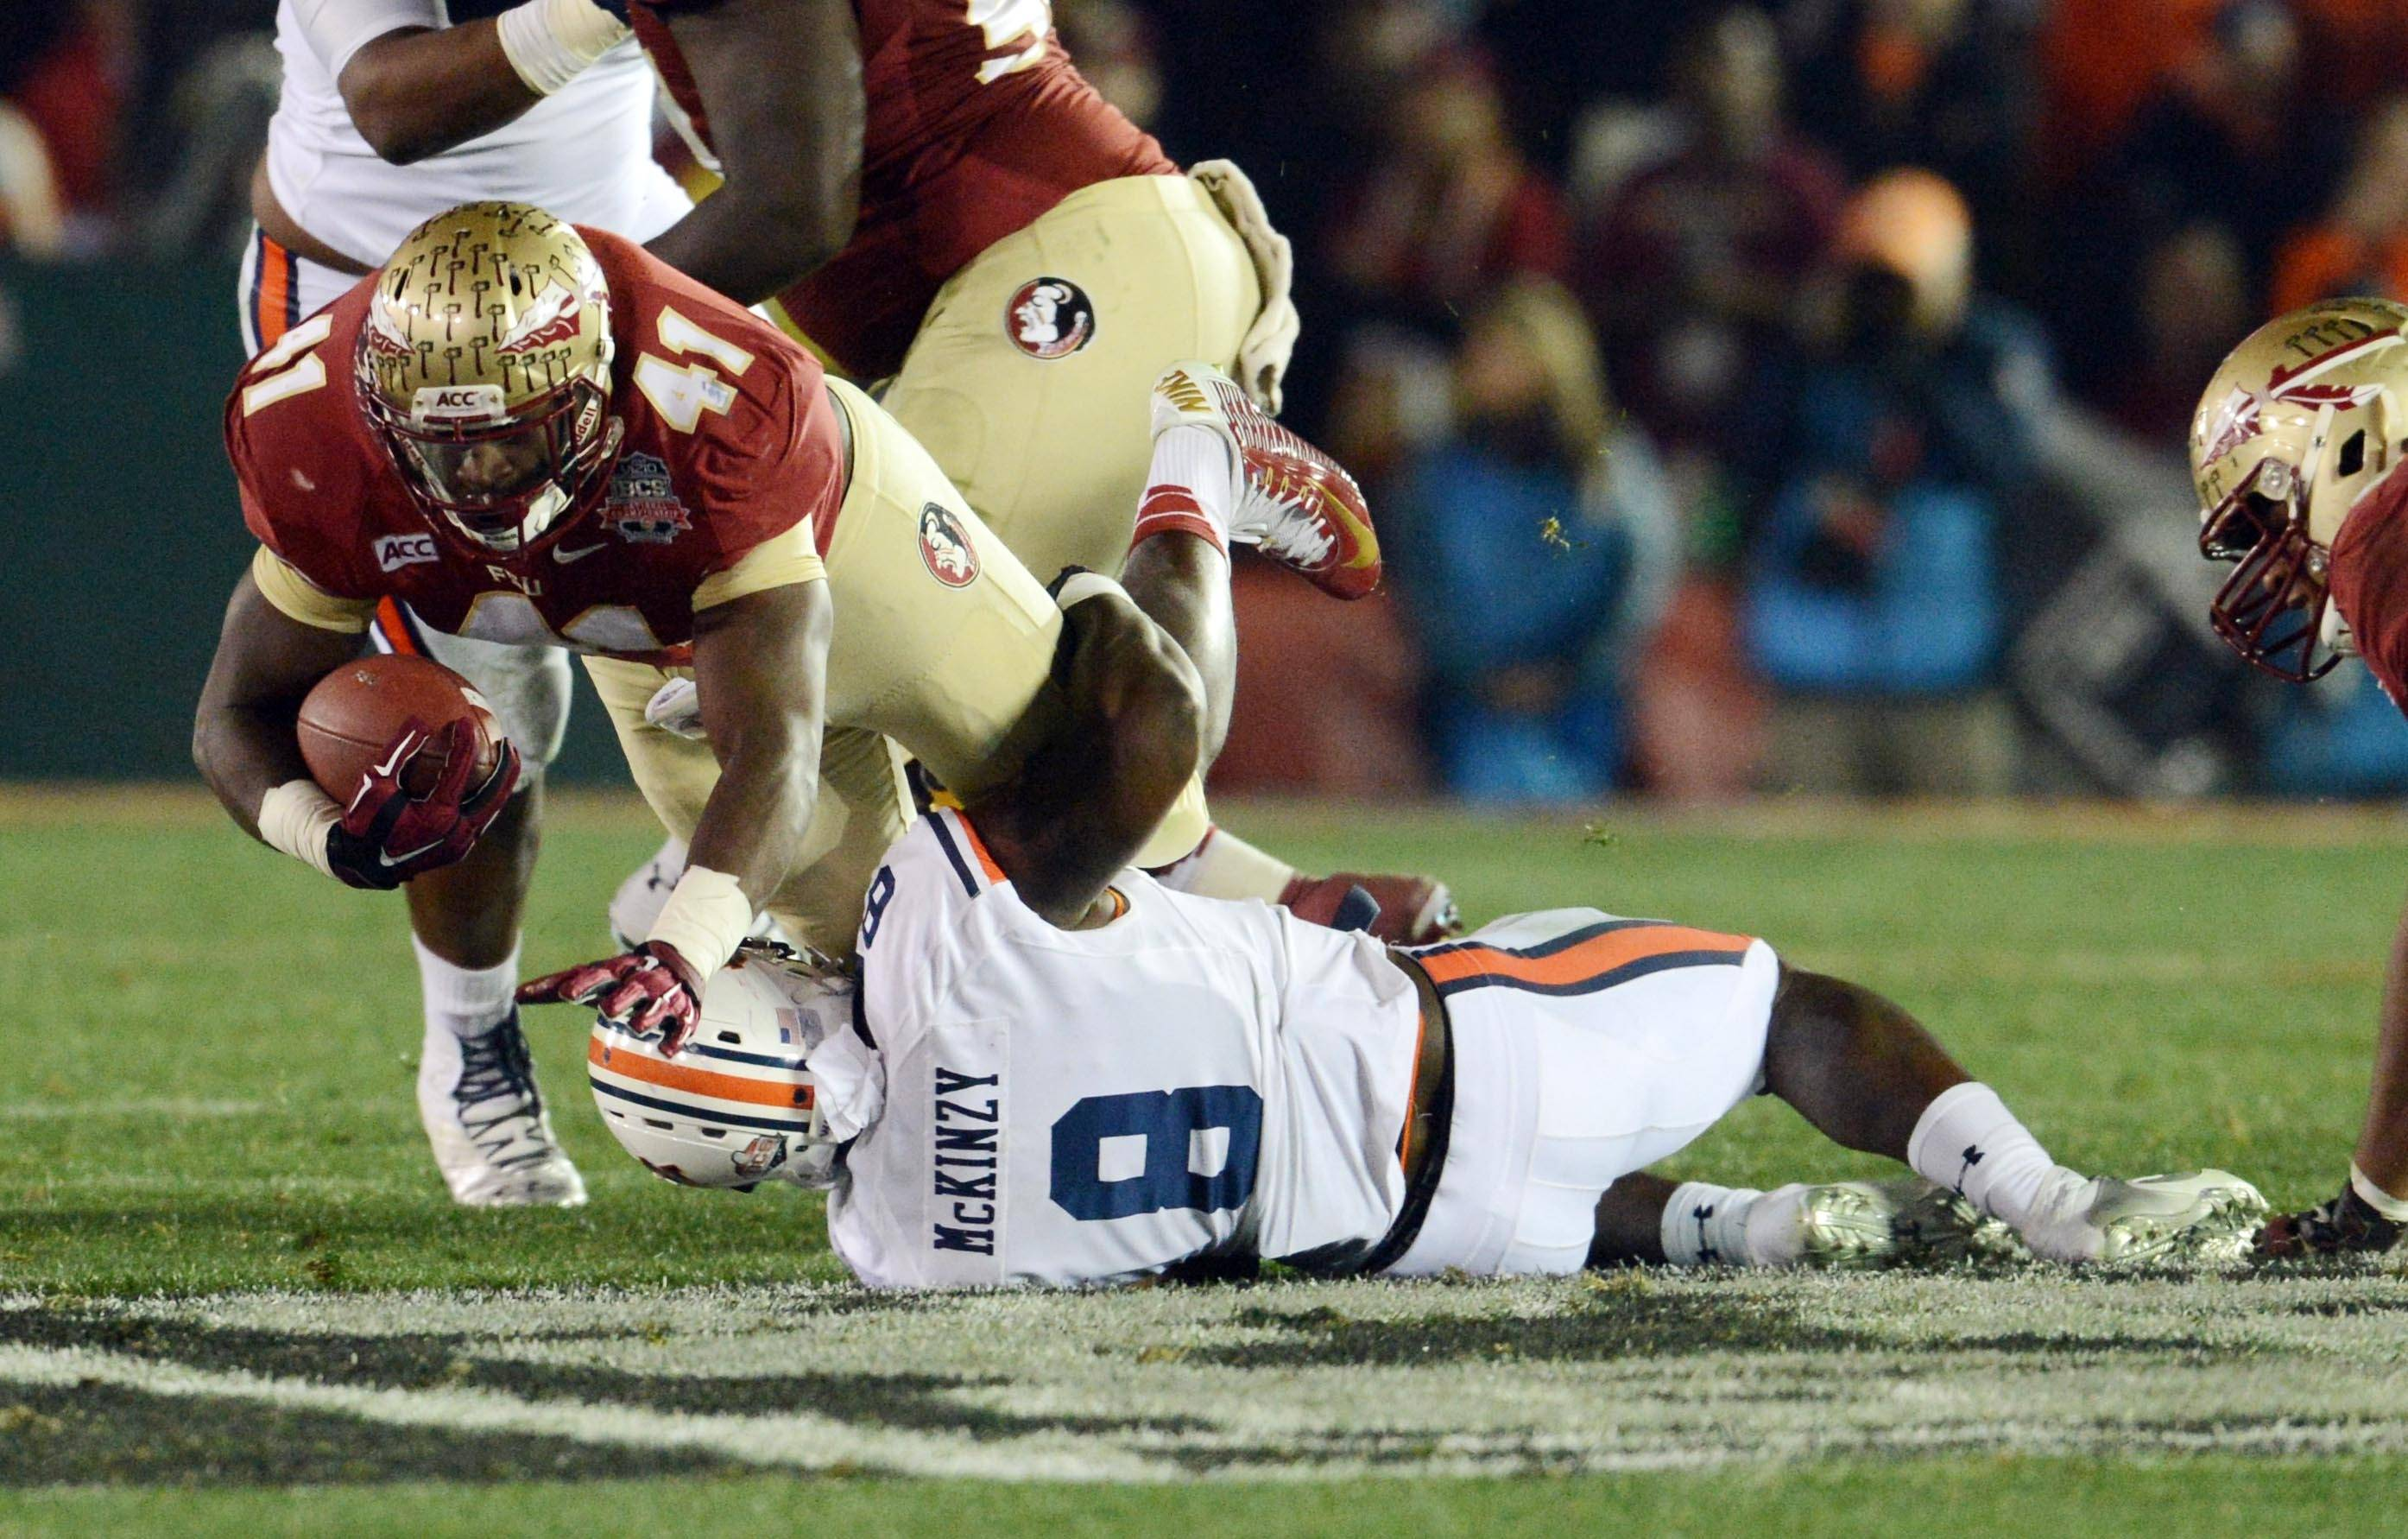 Jan 6, 2014; Pasadena, CA, USA; Florida State Seminoles fullback Chad Abram (41) is tackled by Auburn Tigers linebacker Cassanova McKinzy (8) during the second half of the 2014 BCS National Championship game at the Rose Bowl.  Mandatory Credit: Jayne Kamin-Oncea-USA TODAY Sports